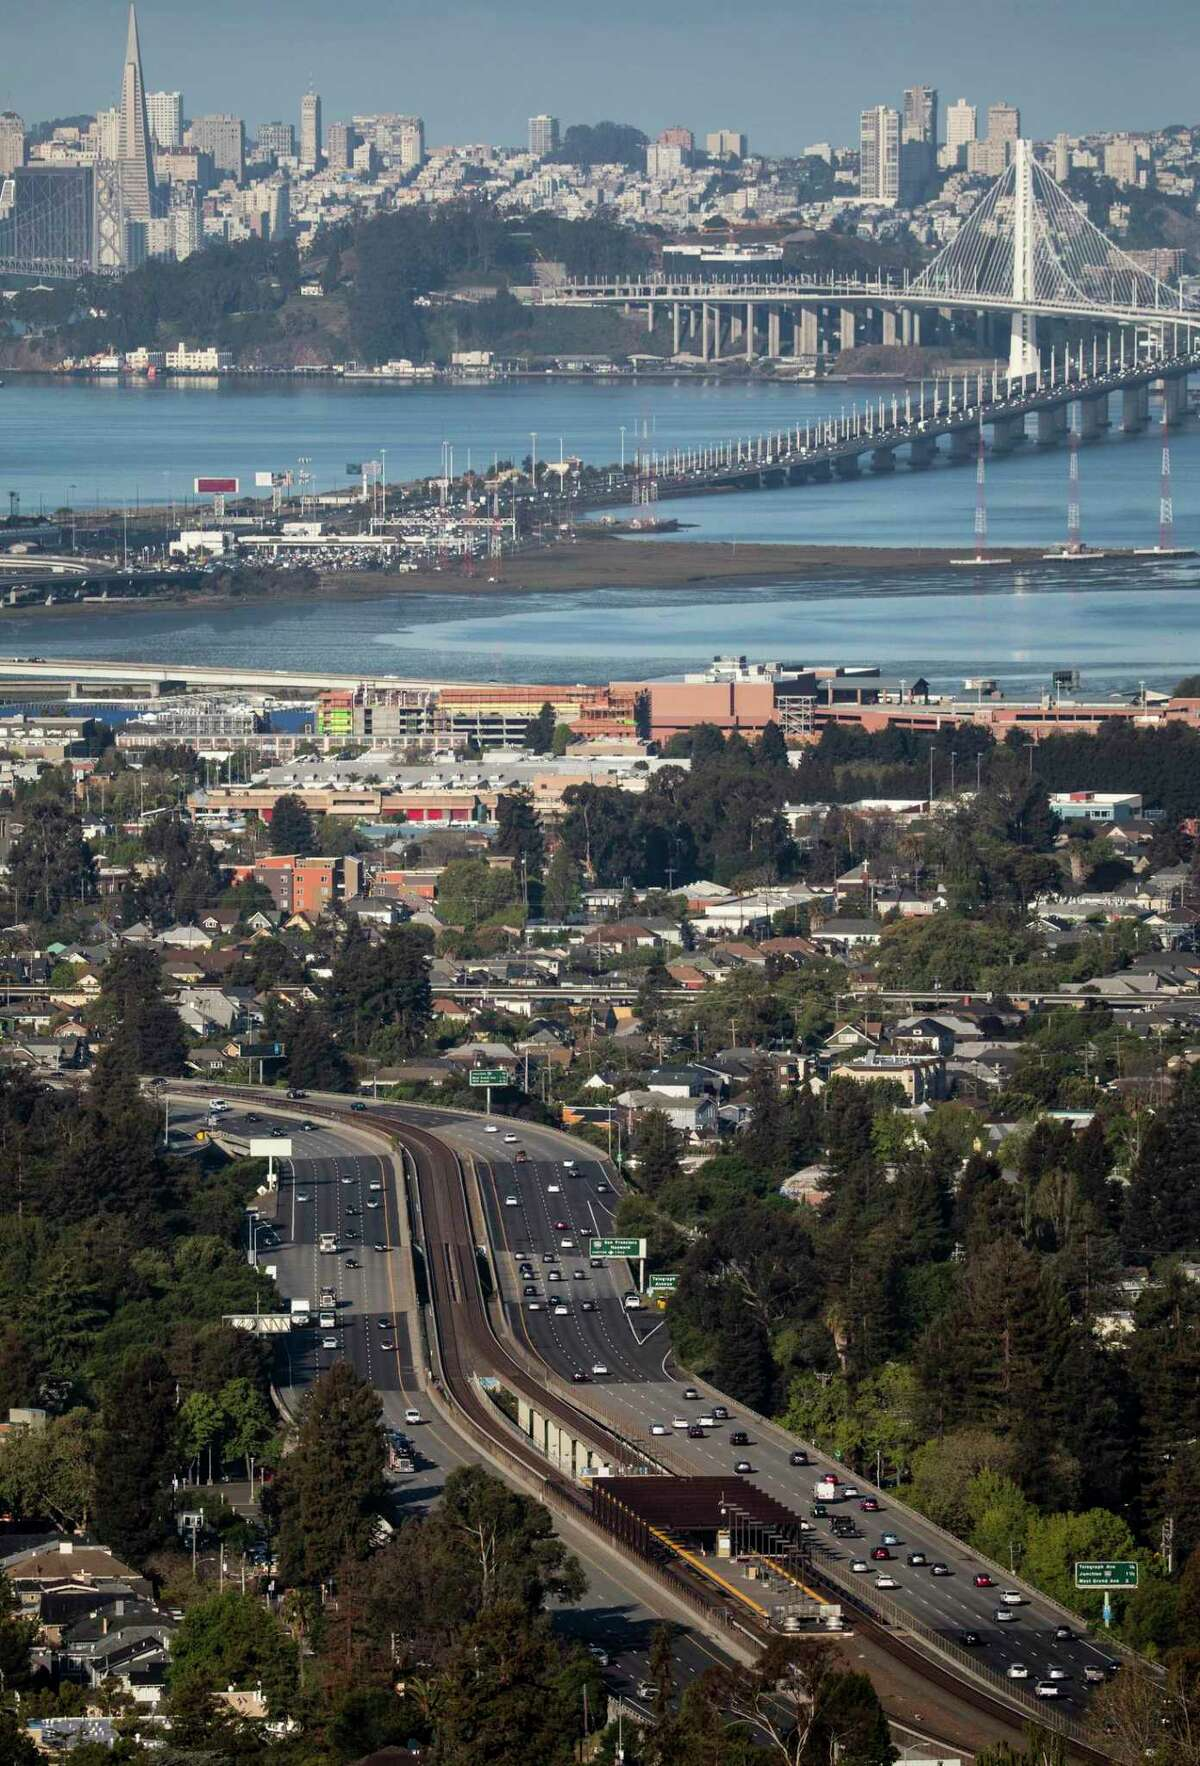 Cars move comfortably along Highway 24 in Oakland in April. Caltrans data for the Bay Area's nine counties shows that while traffic volume has rebounded to near pre-pandemic levels, actual congestion on freeways still remains lower than what it was before the pandemic.